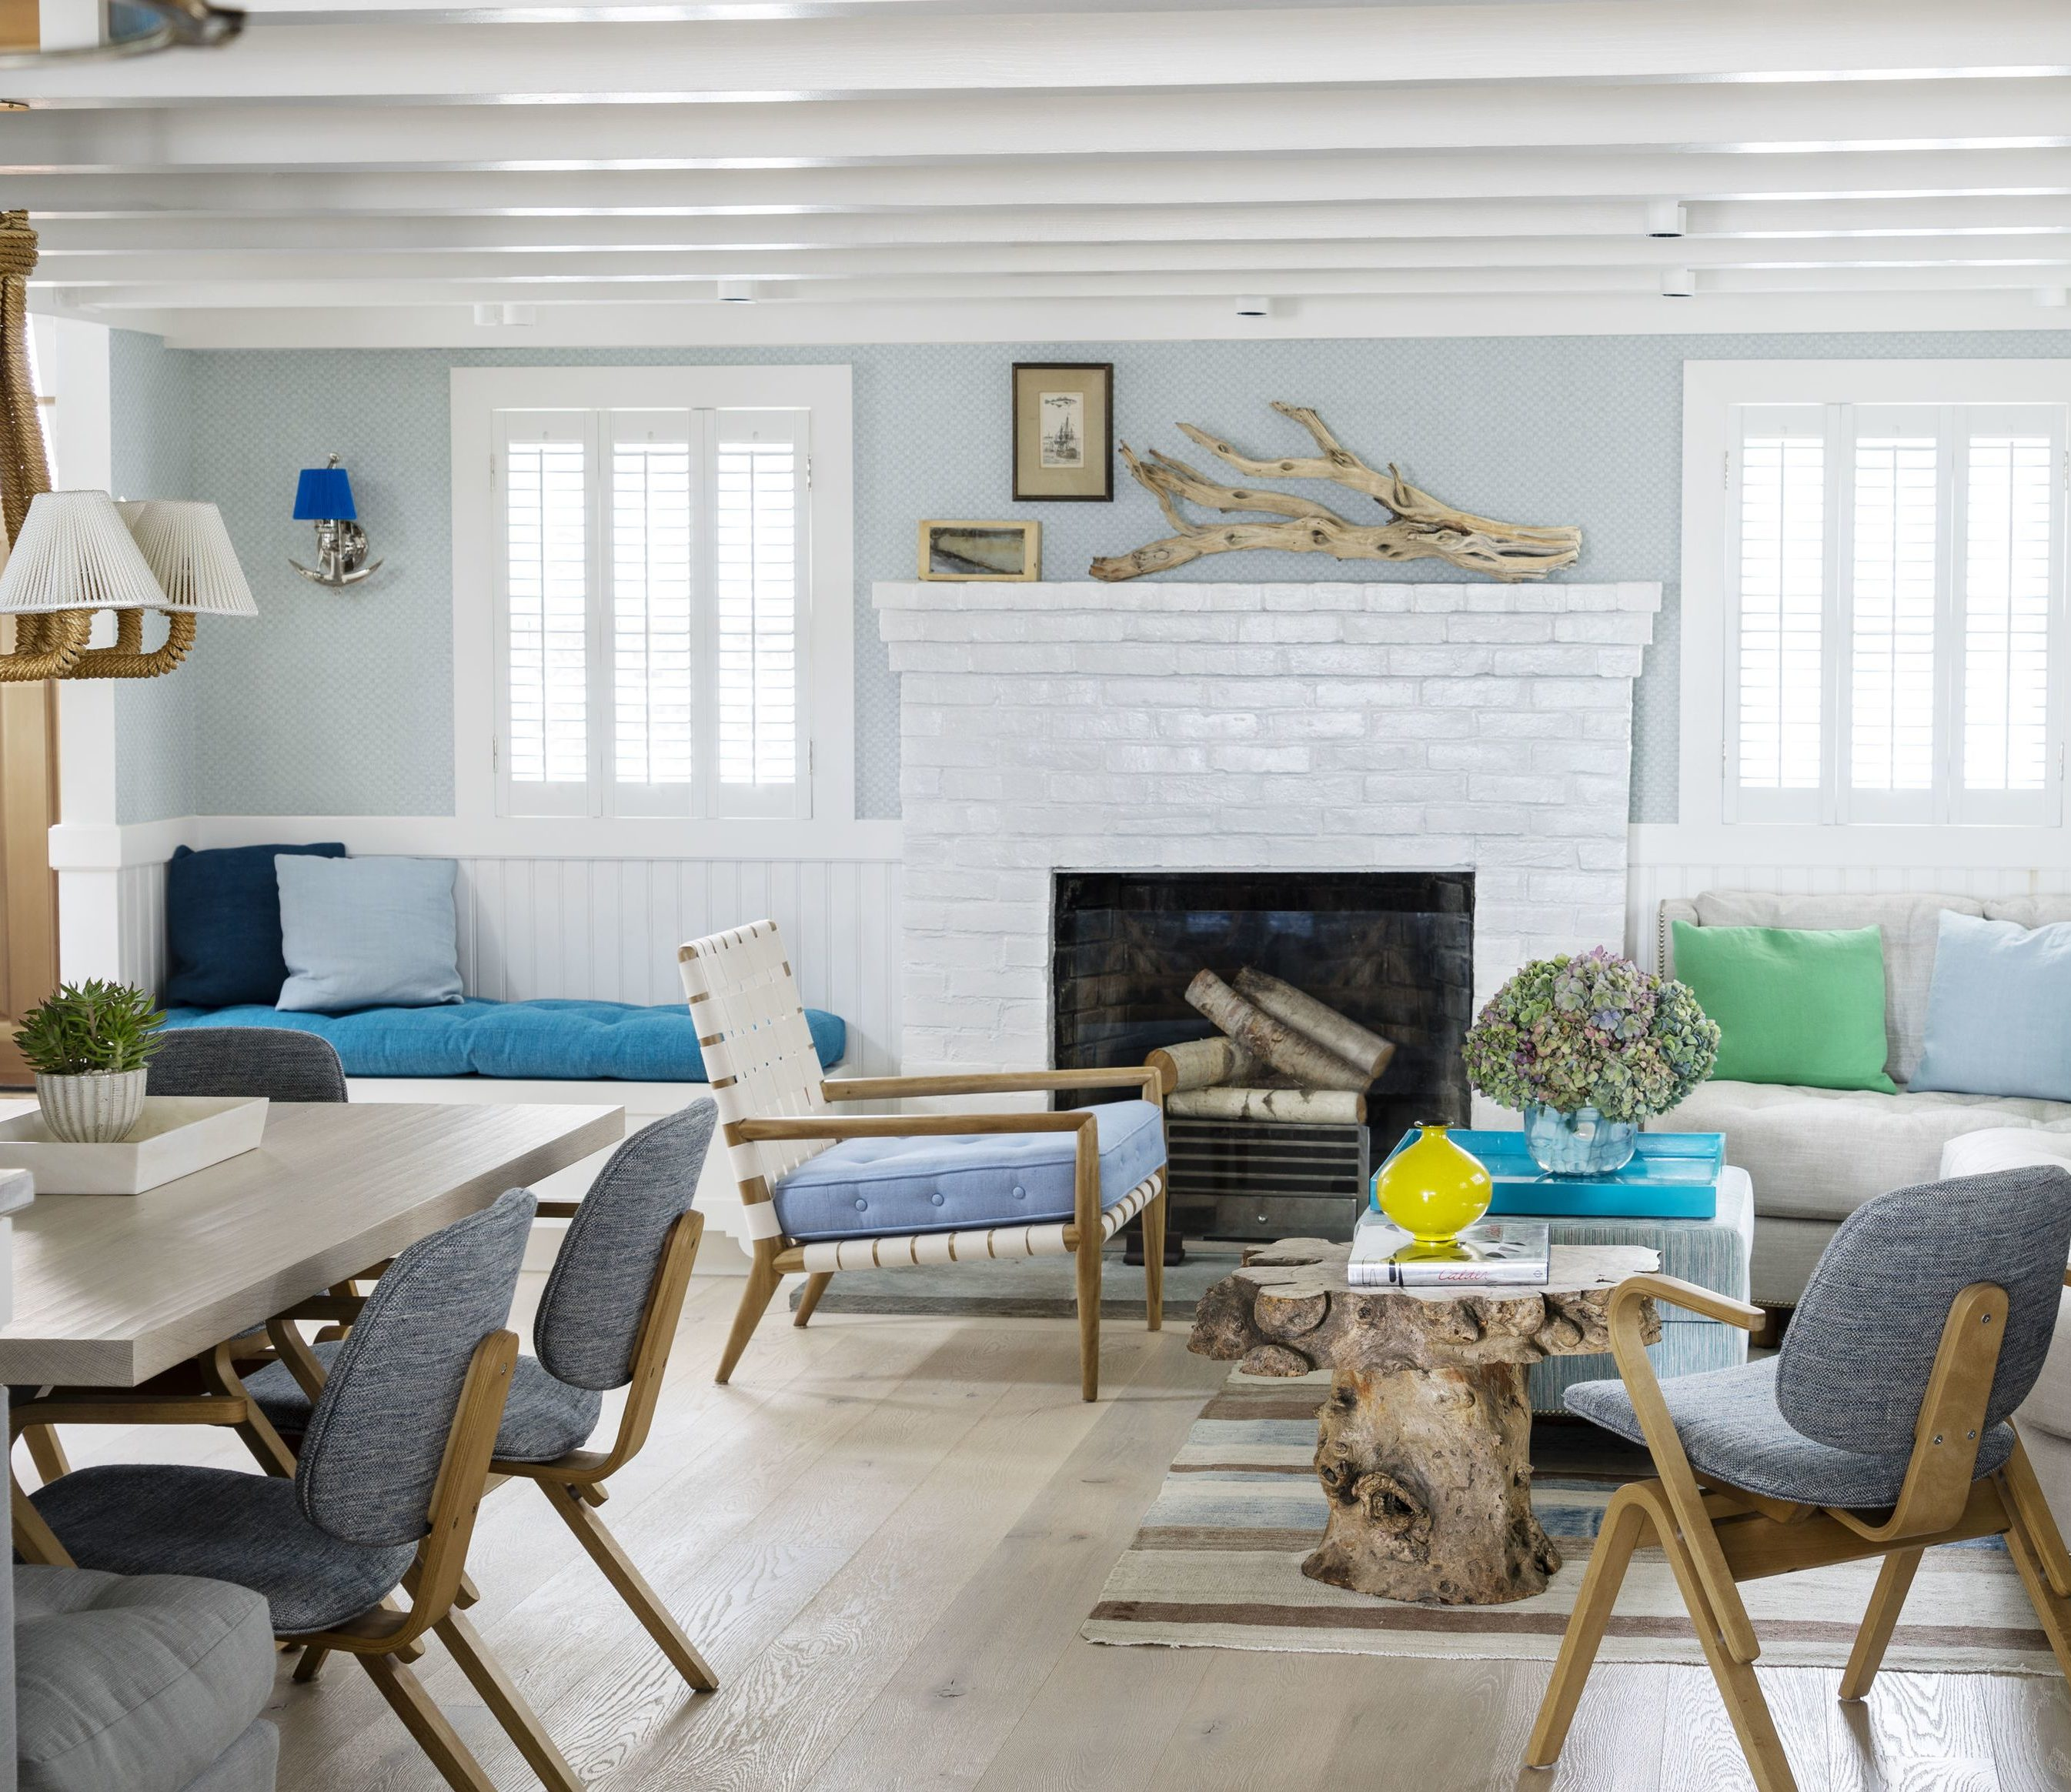 Driftwood Over The Mantel And As Base Of A Table Add To Modern Coastal Look This Open Floor Plan Living E Image House Beautiful